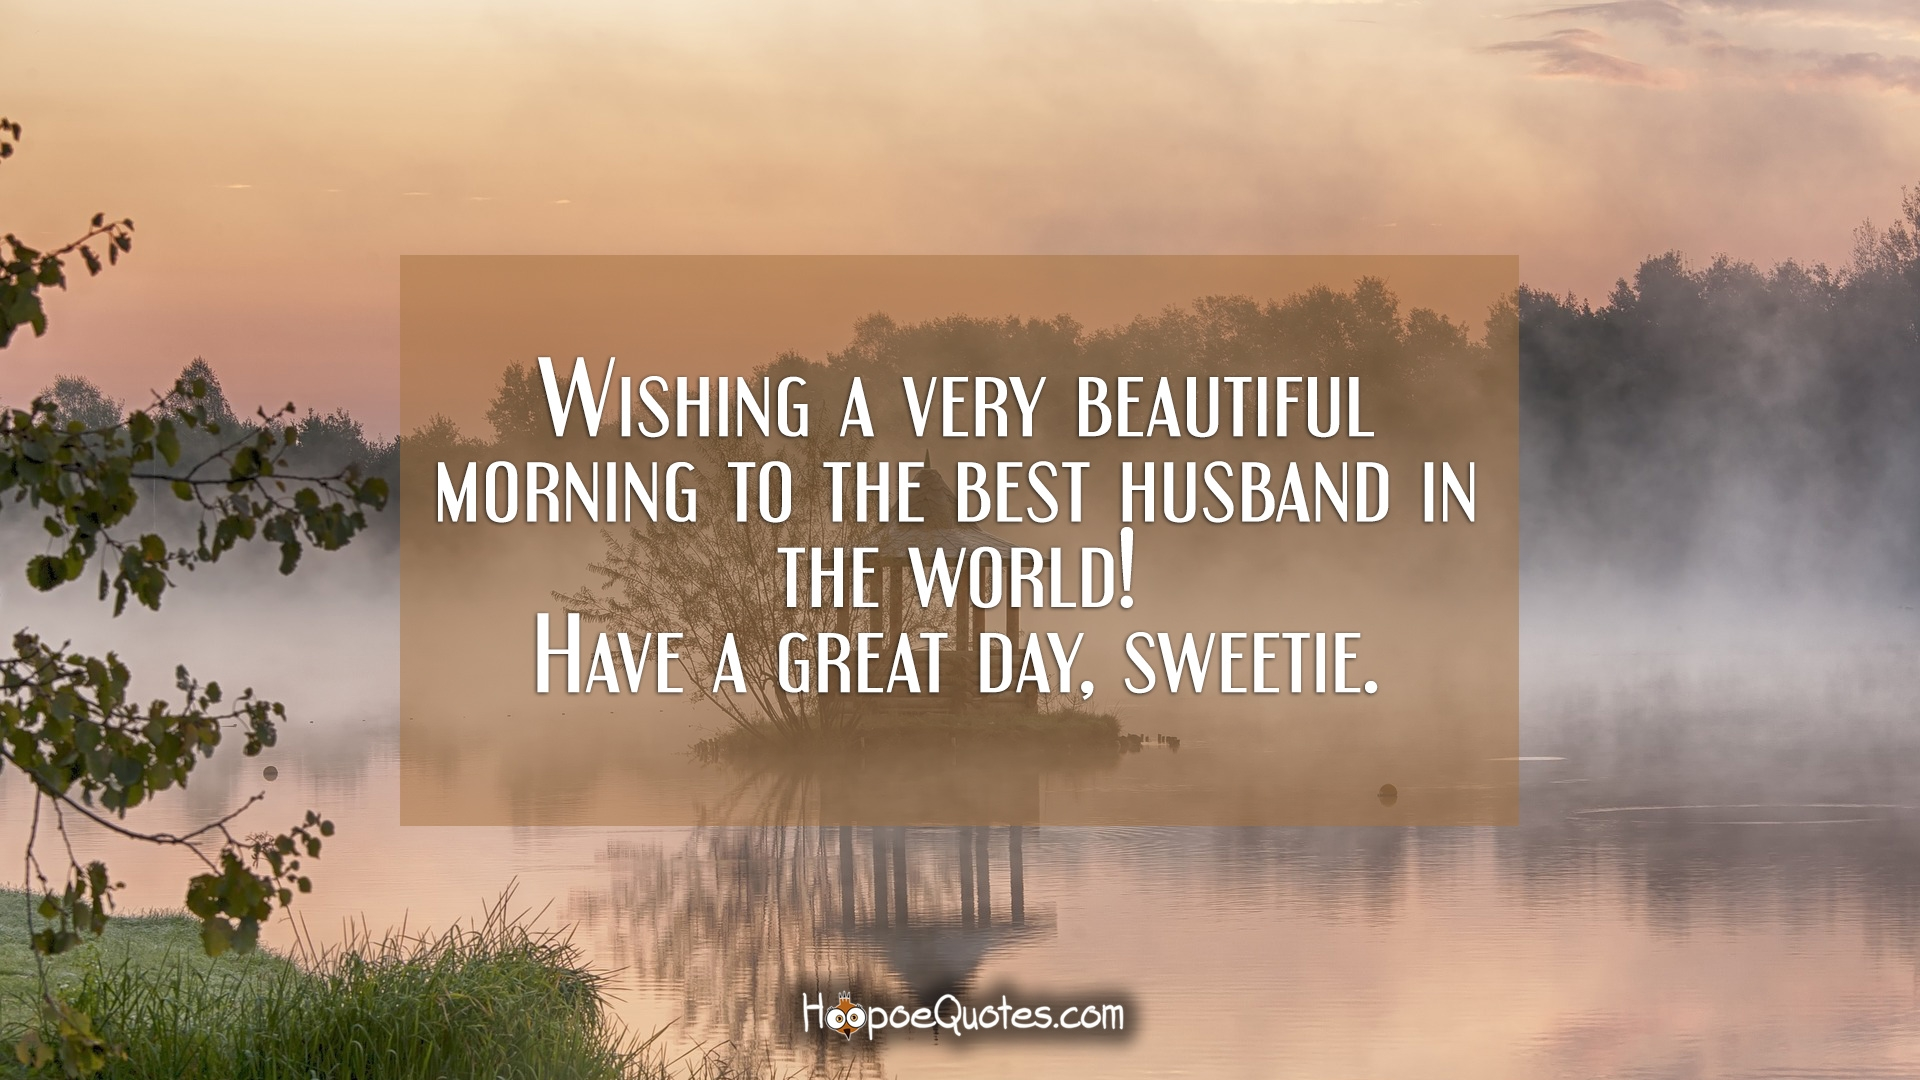 Wishing a very beautiful morning to the best husband in